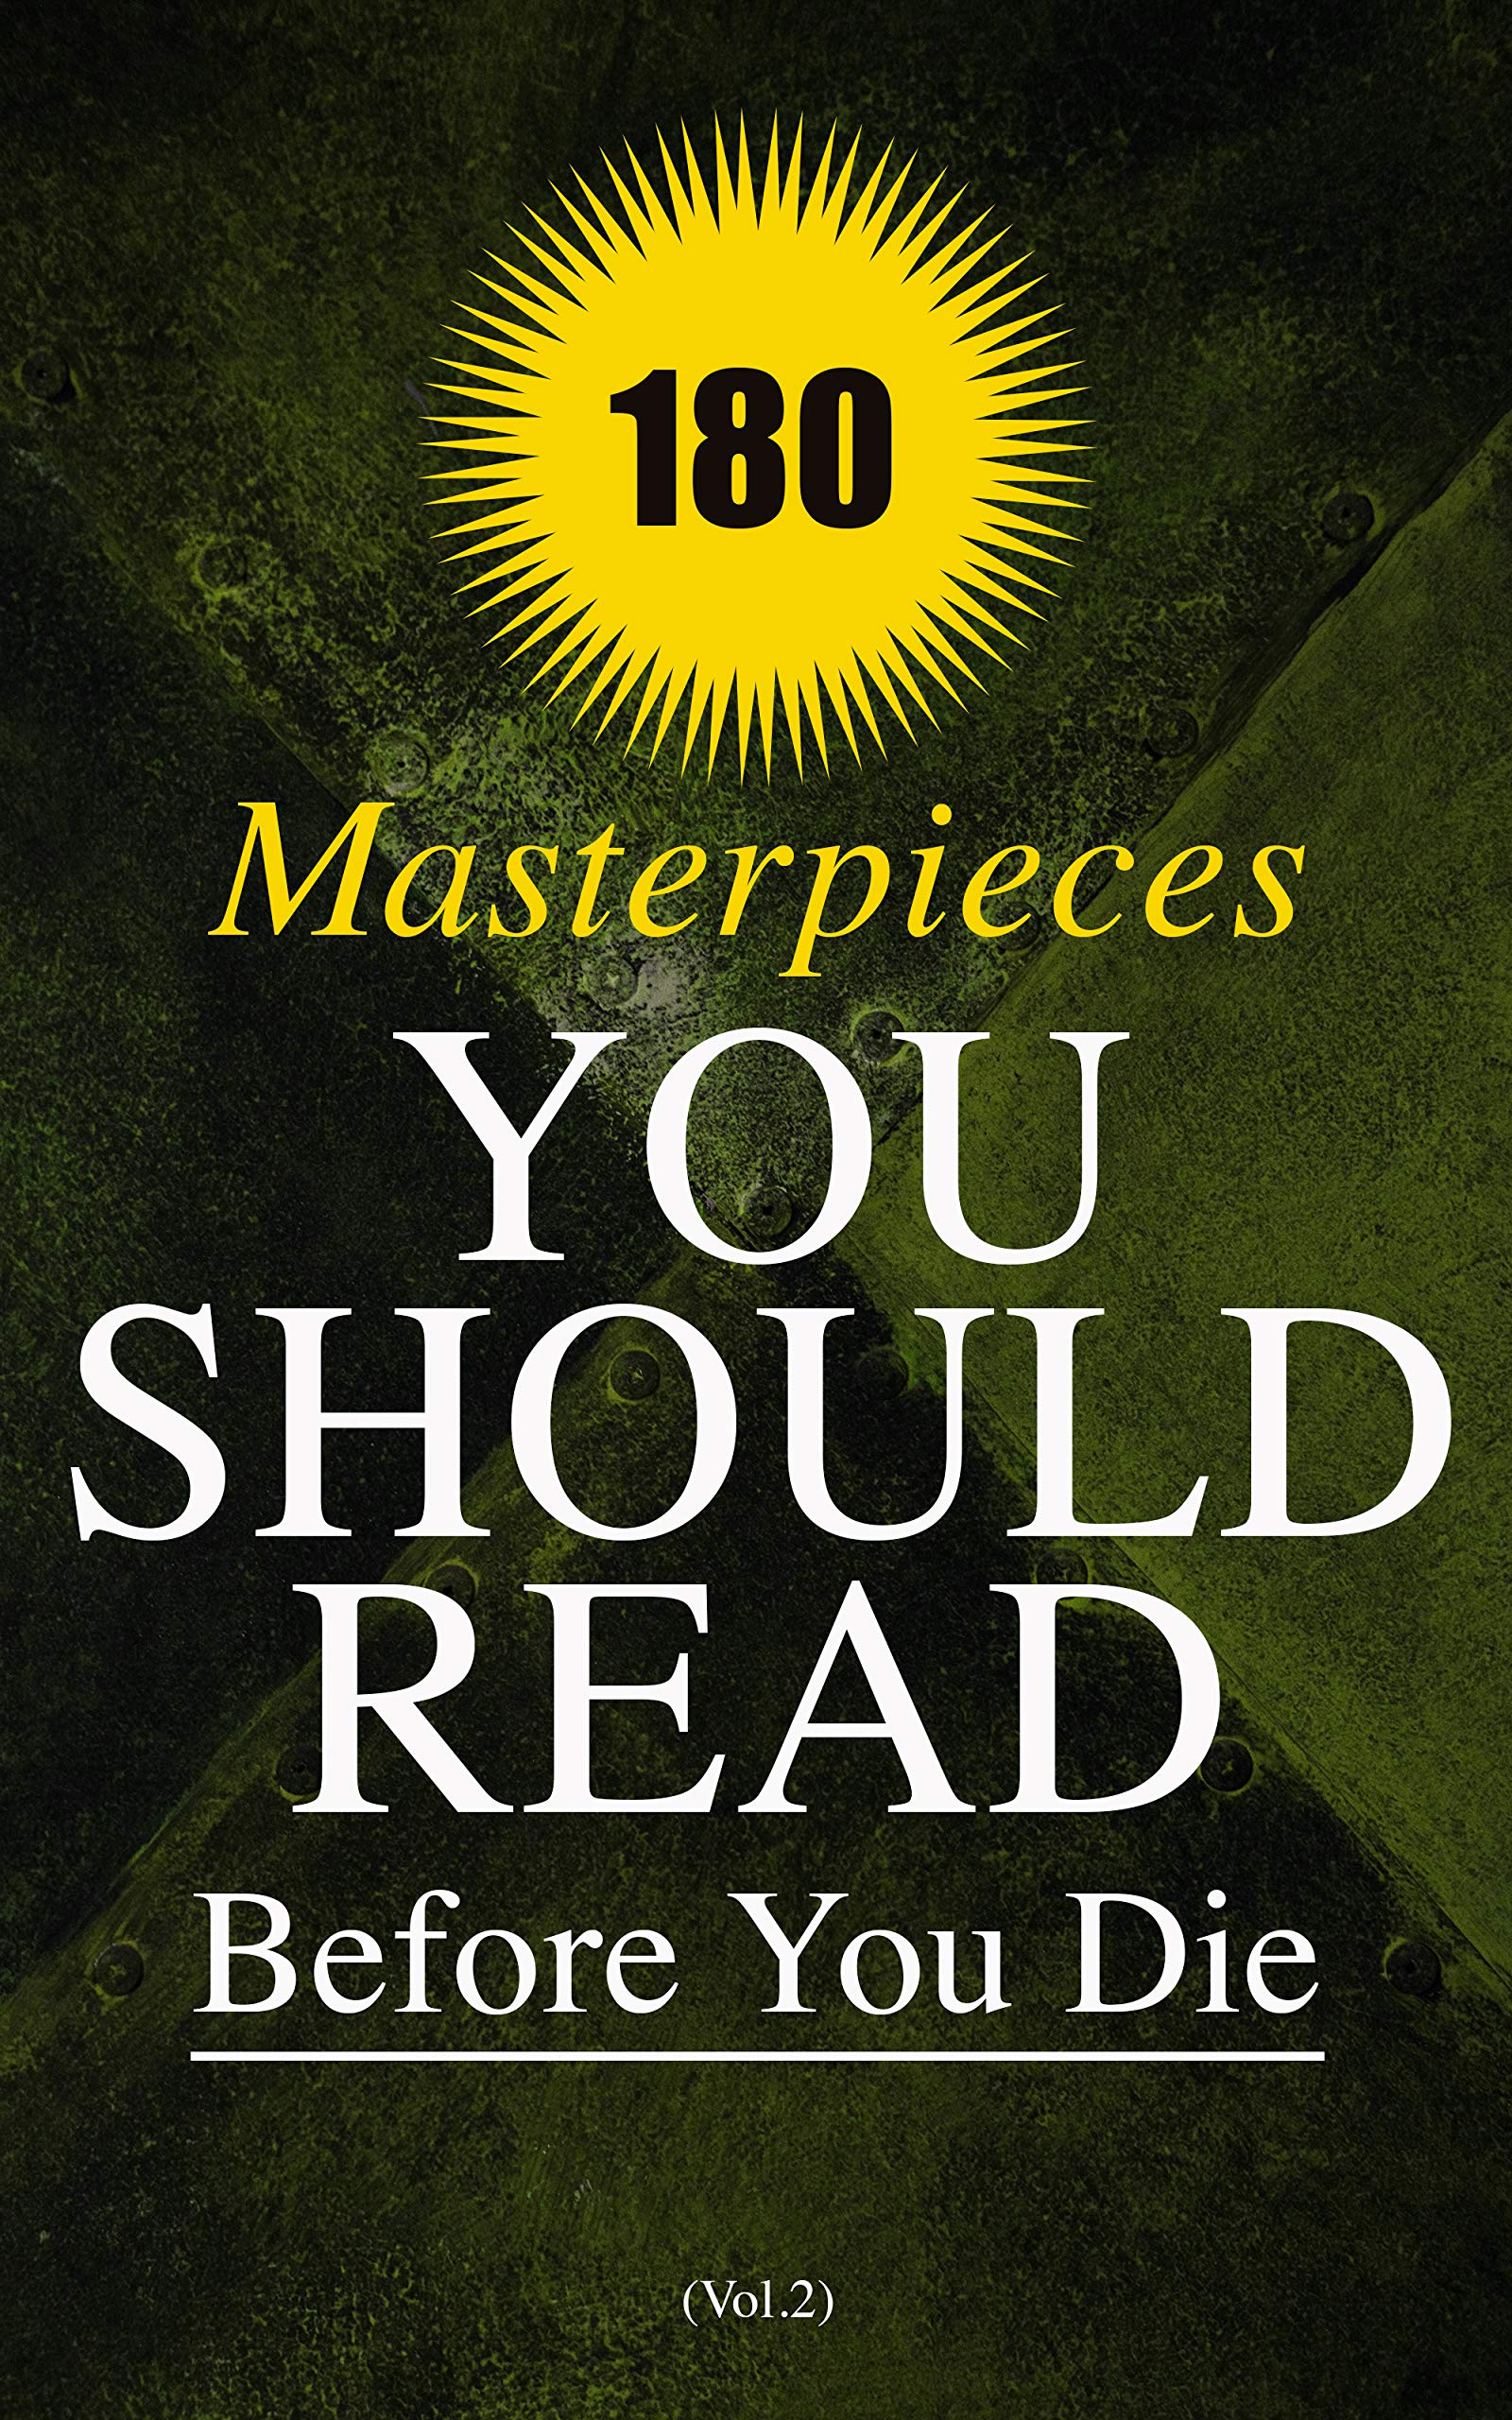 180 Masterpieces You Should Read Before You Die (Vol.2): Life is a Dream, The Awakening, Babbitt, Strange Case of Dr Jekyll and Mr Hyde, Sense and Sensibility, ... Hunchback of Notre Dame, Iliad & Odyssey...